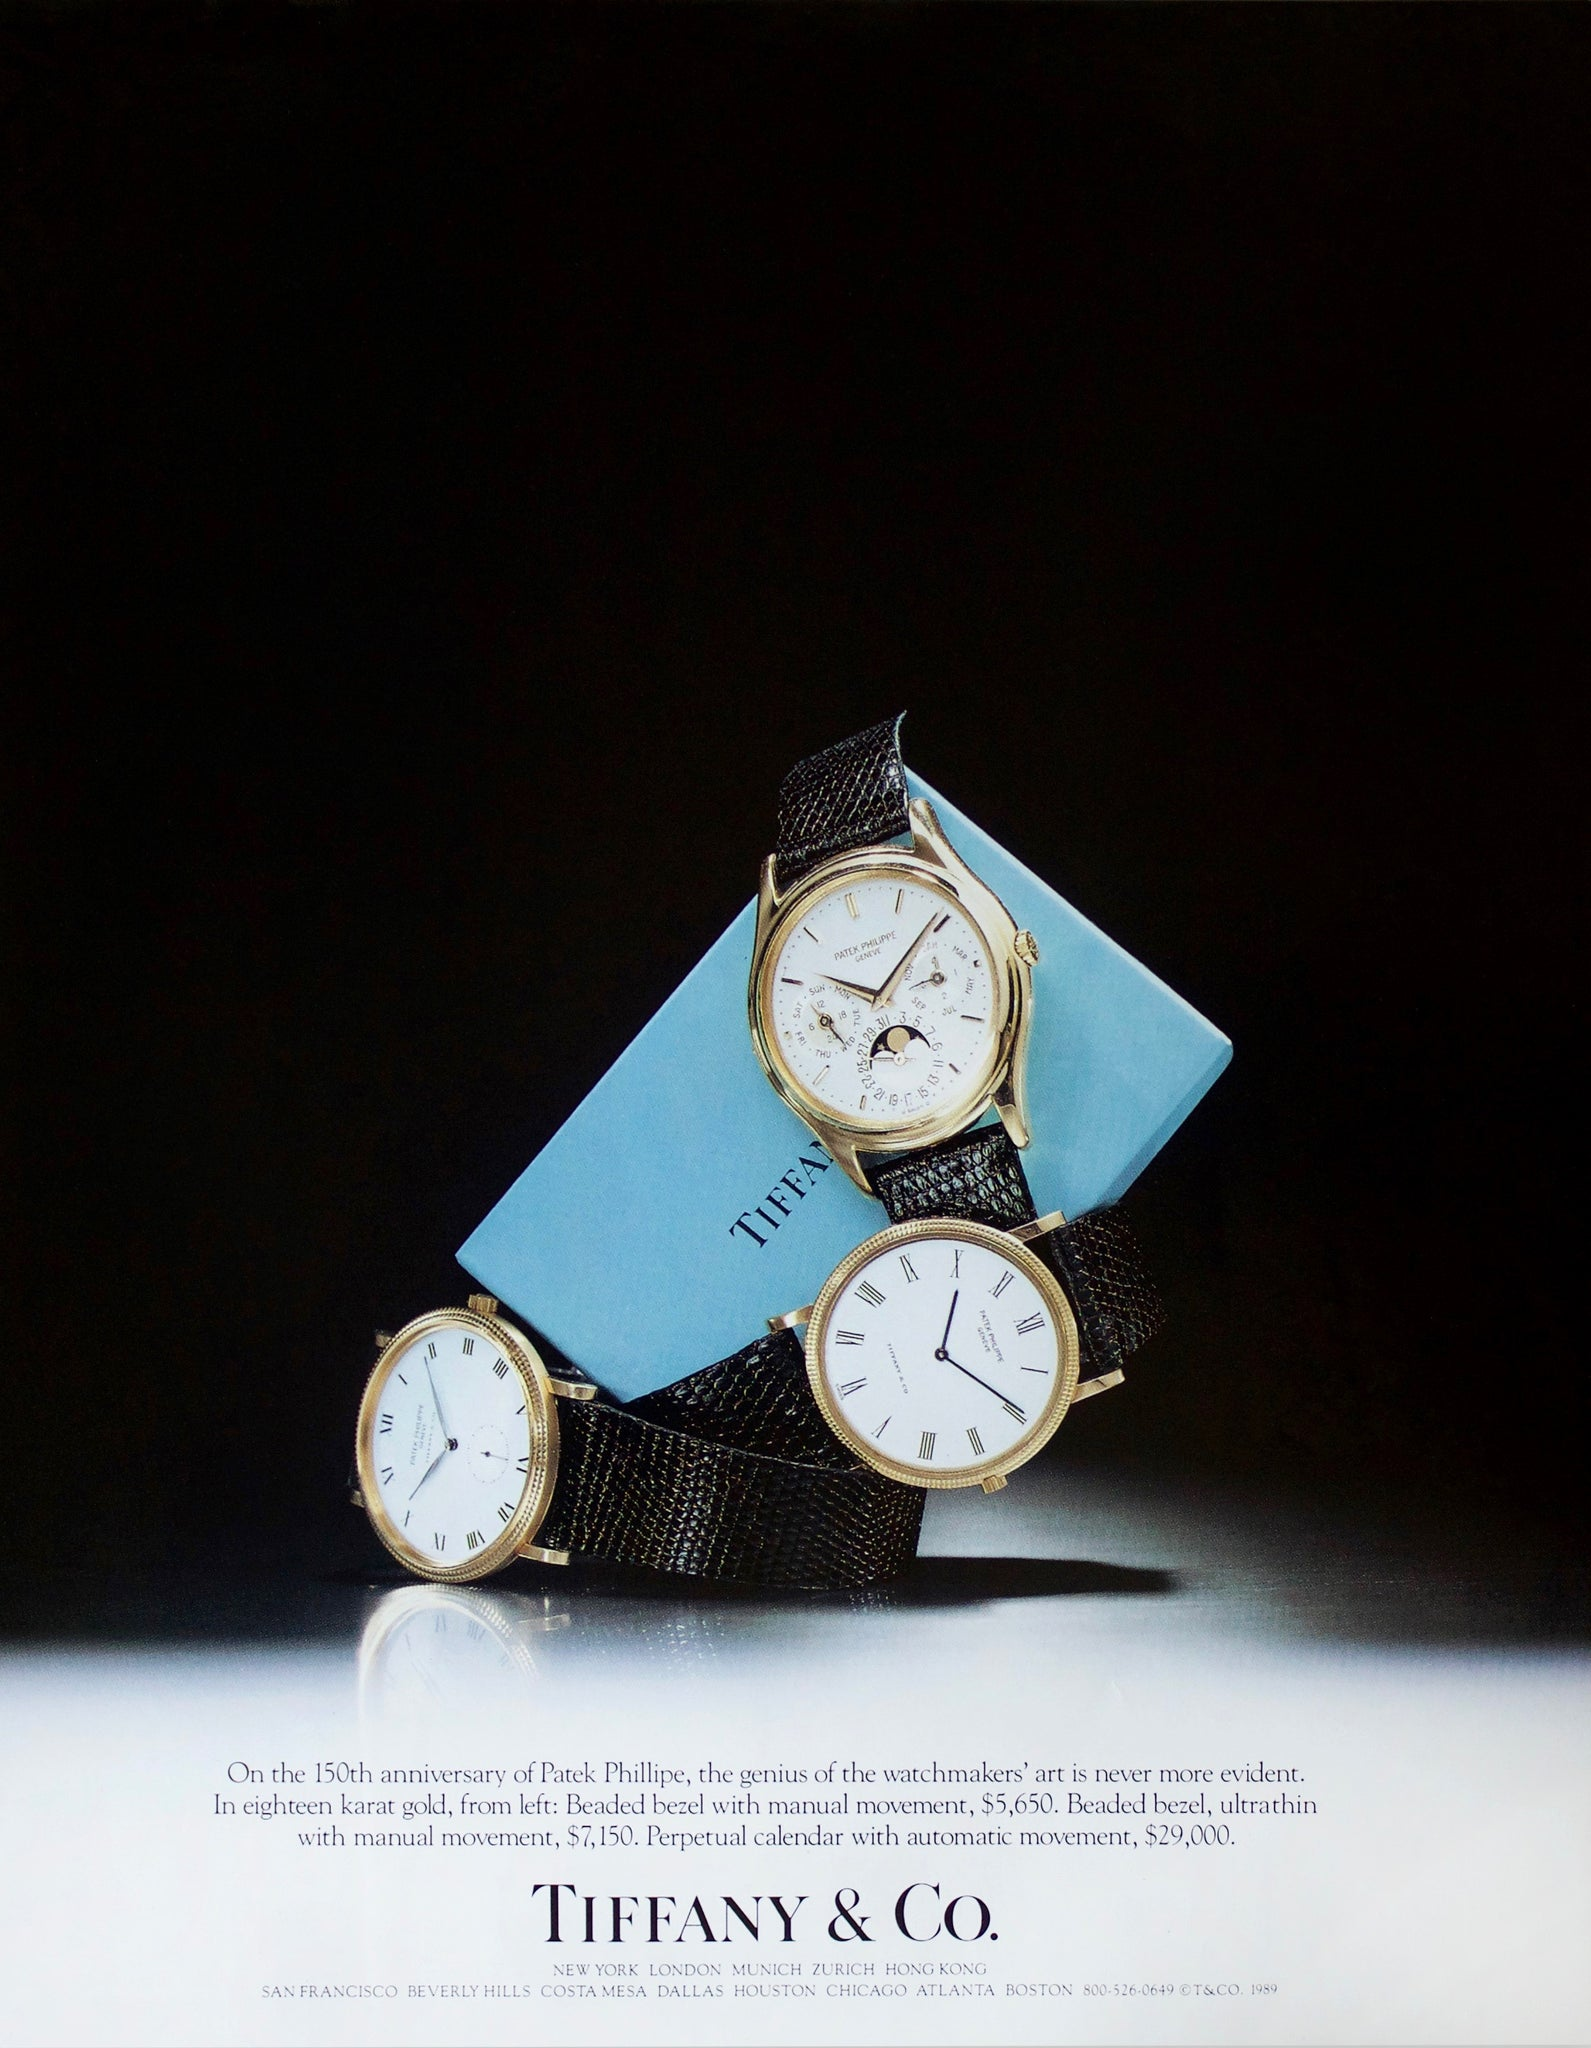 Tiffany & Co advertisement from 1989 that includes a Patek Philippe 3940